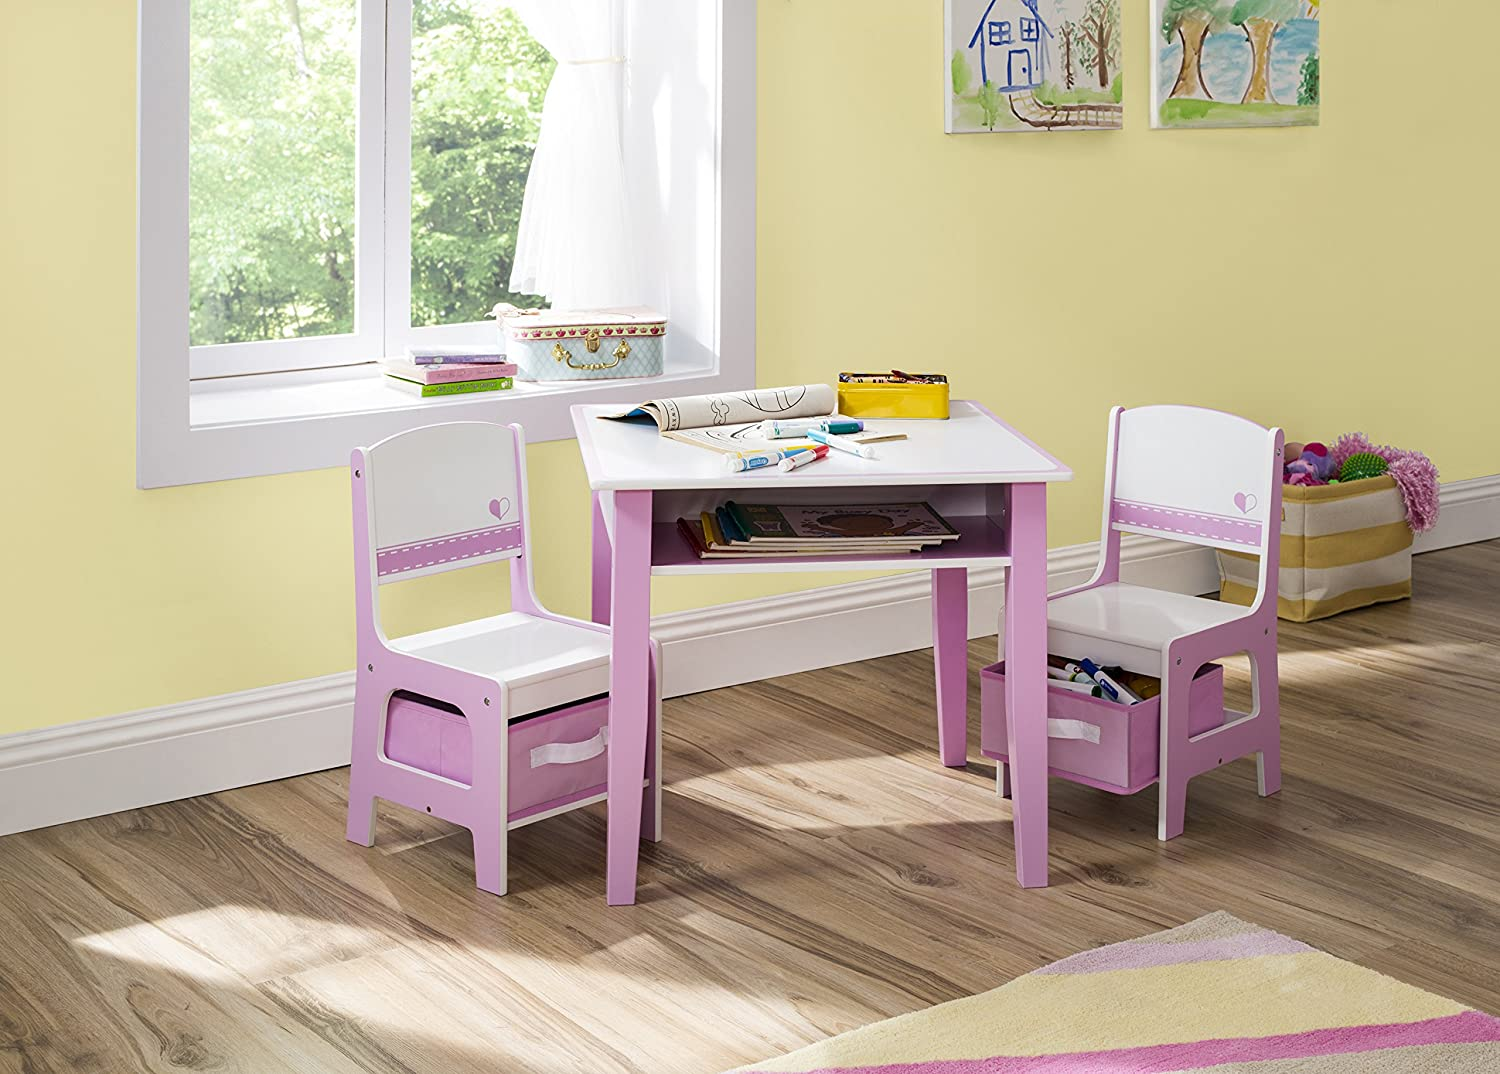 Amazon.com Delta Children Jack \u0026 Jill Storage Table \u0026 Chair Set Pink/White Baby & Amazon.com: Delta Children Jack \u0026 Jill Storage Table \u0026 Chair Set ...